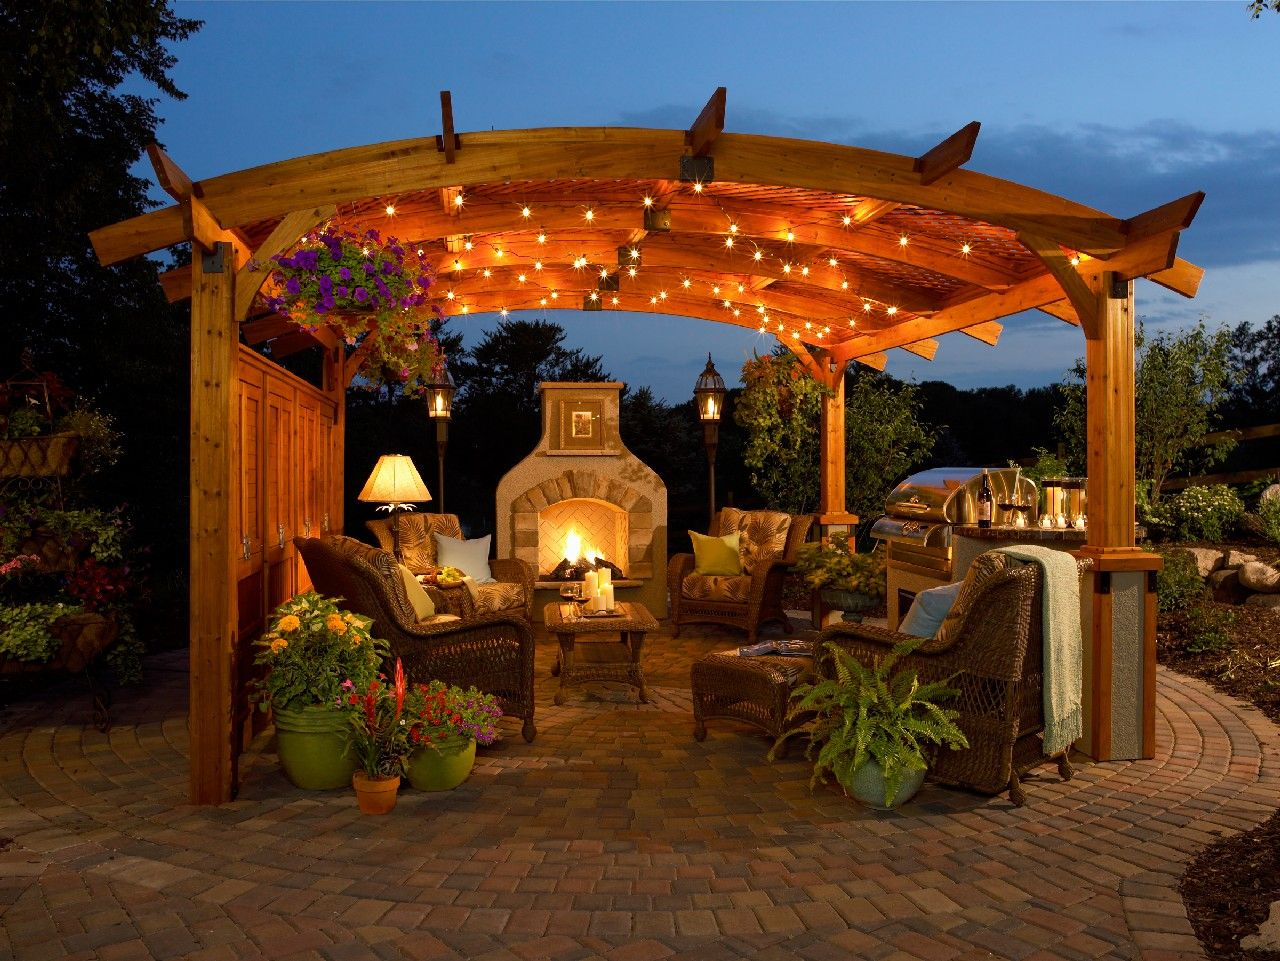 13 Beautiful Pergola Patio Ideas For Your Garden | Pergolas ...